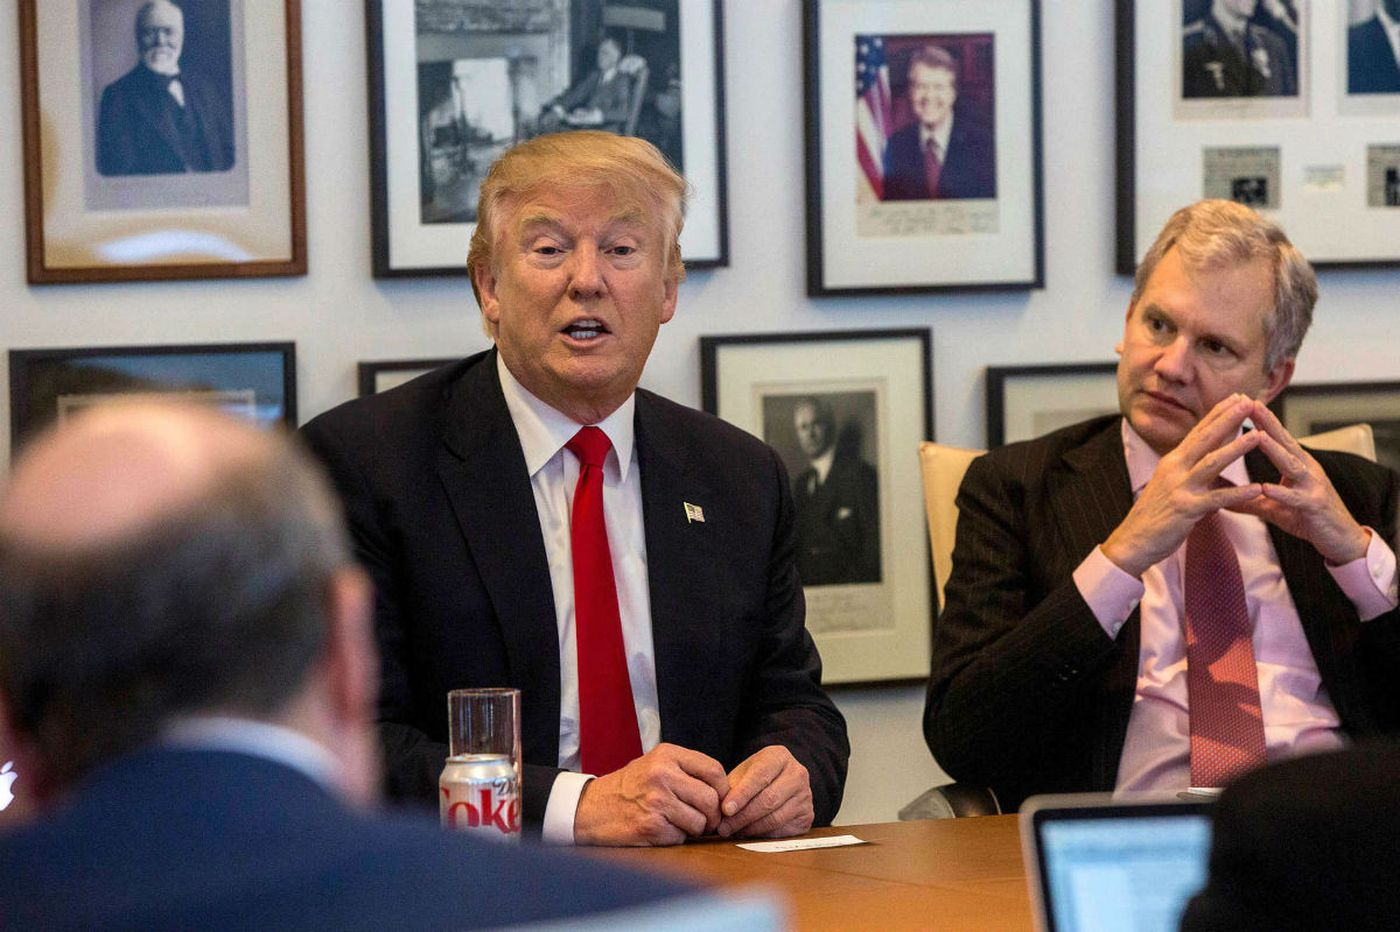 Inquirer Editorial: Trump keeps changing his tune; this time on climate change